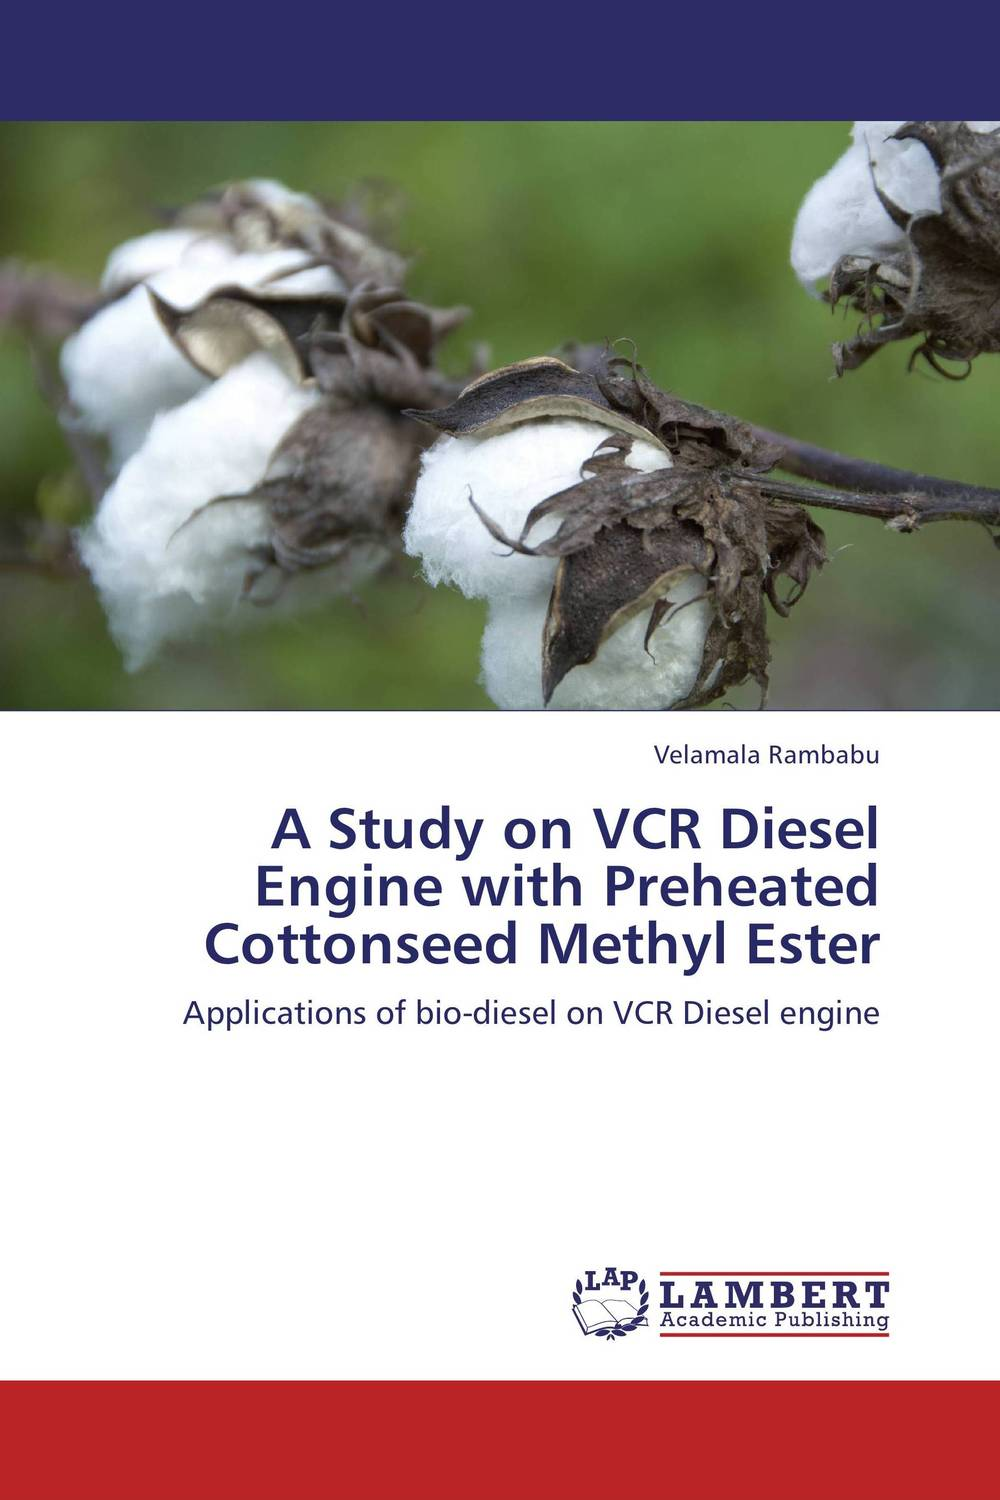 A Study on VCR Diesel Engine with Preheated Cottonseed Methyl Ester купить